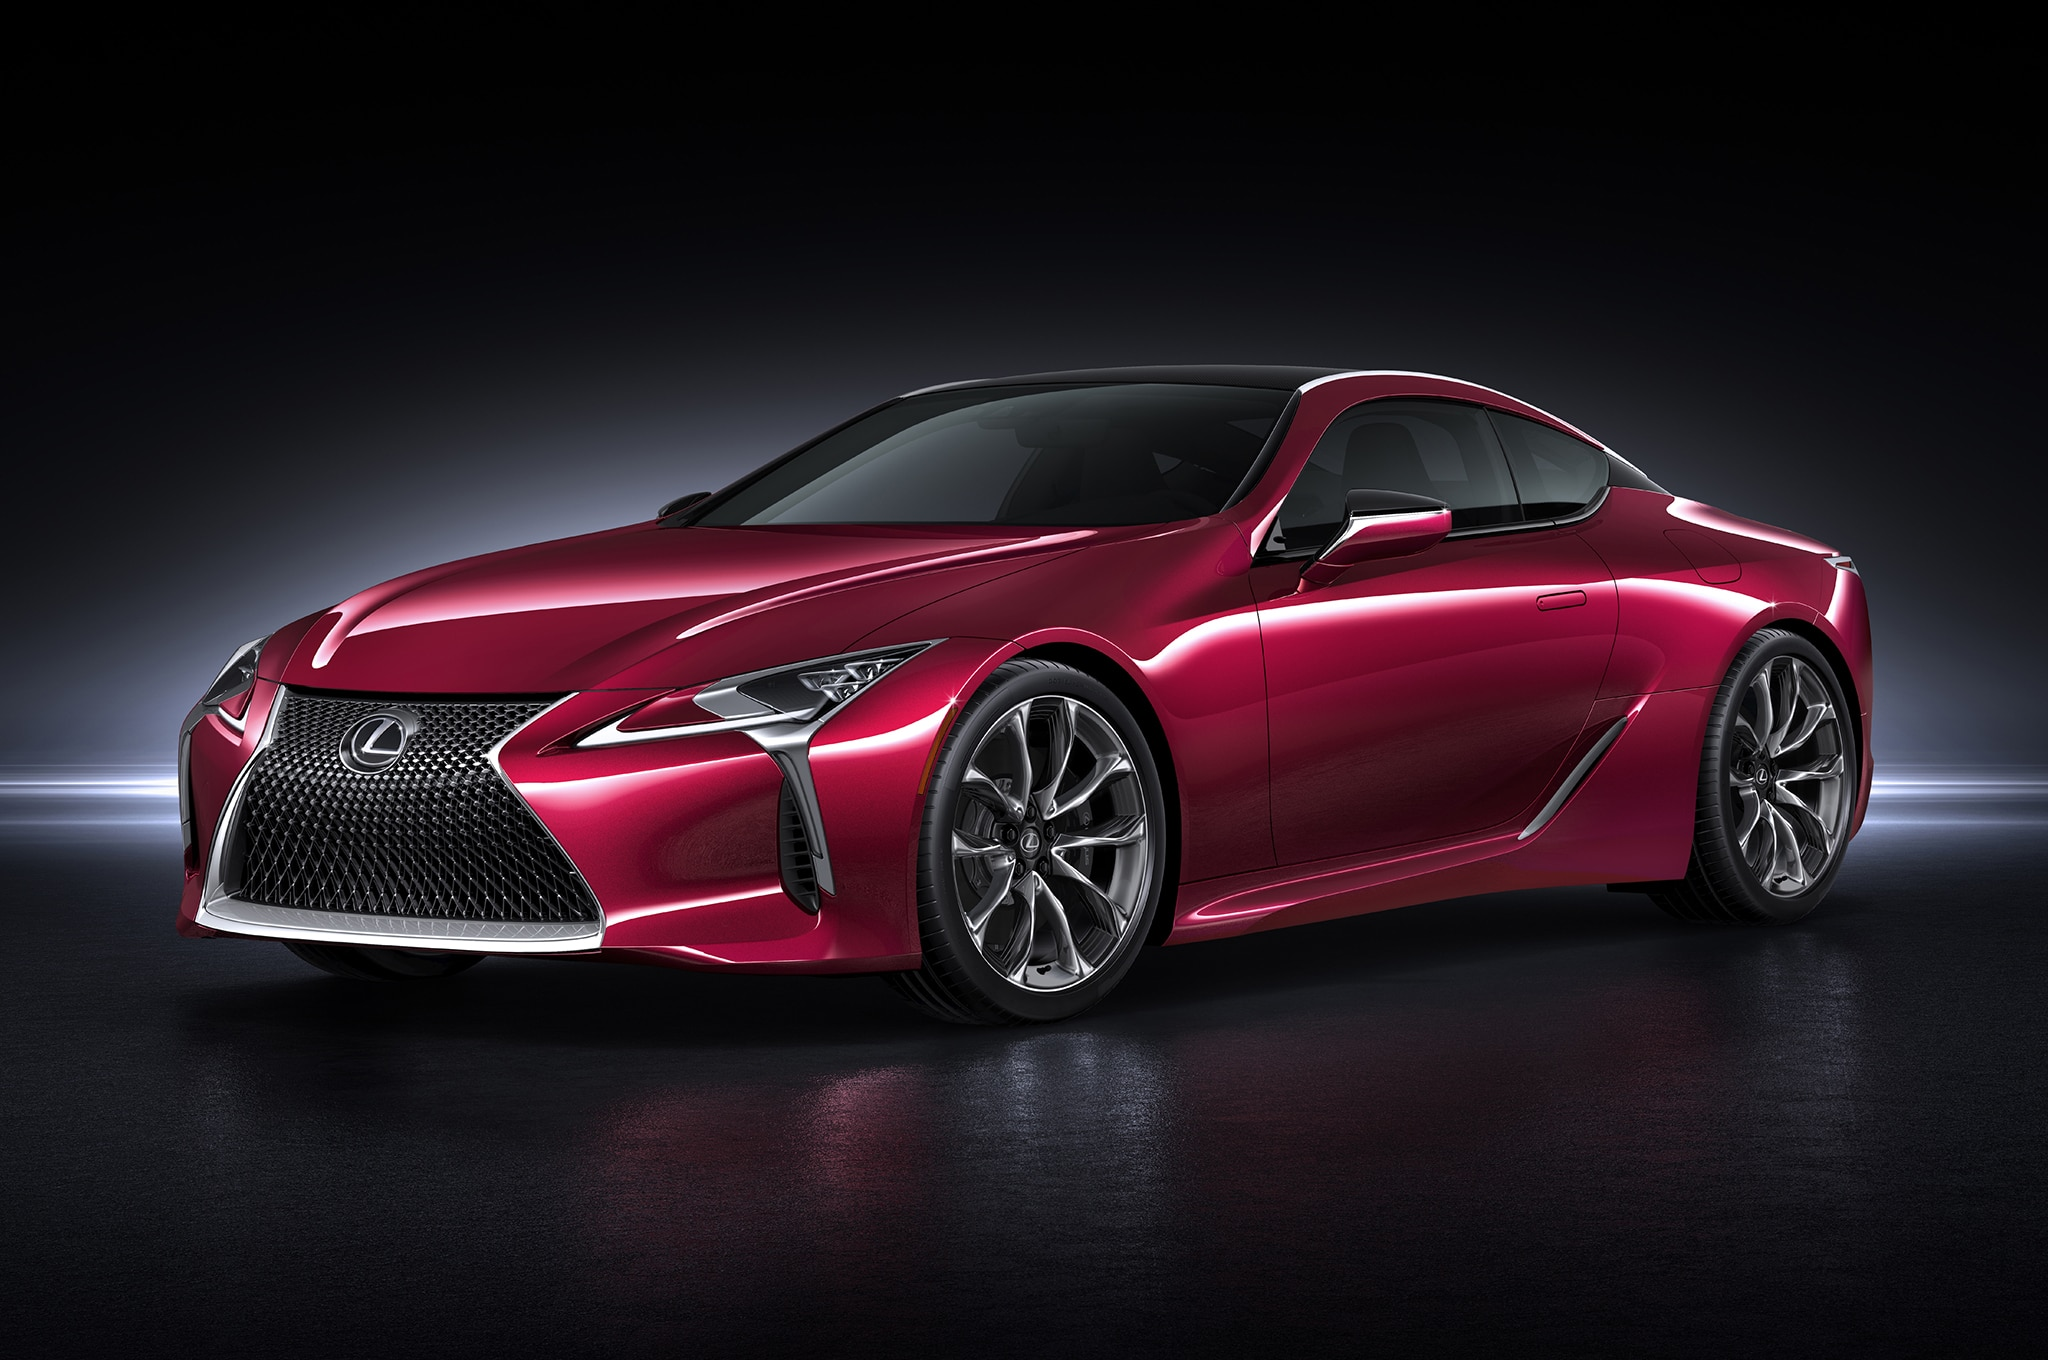 2017 lexus lc 500 toyoda s vision for lexus comes into focus. Black Bedroom Furniture Sets. Home Design Ideas